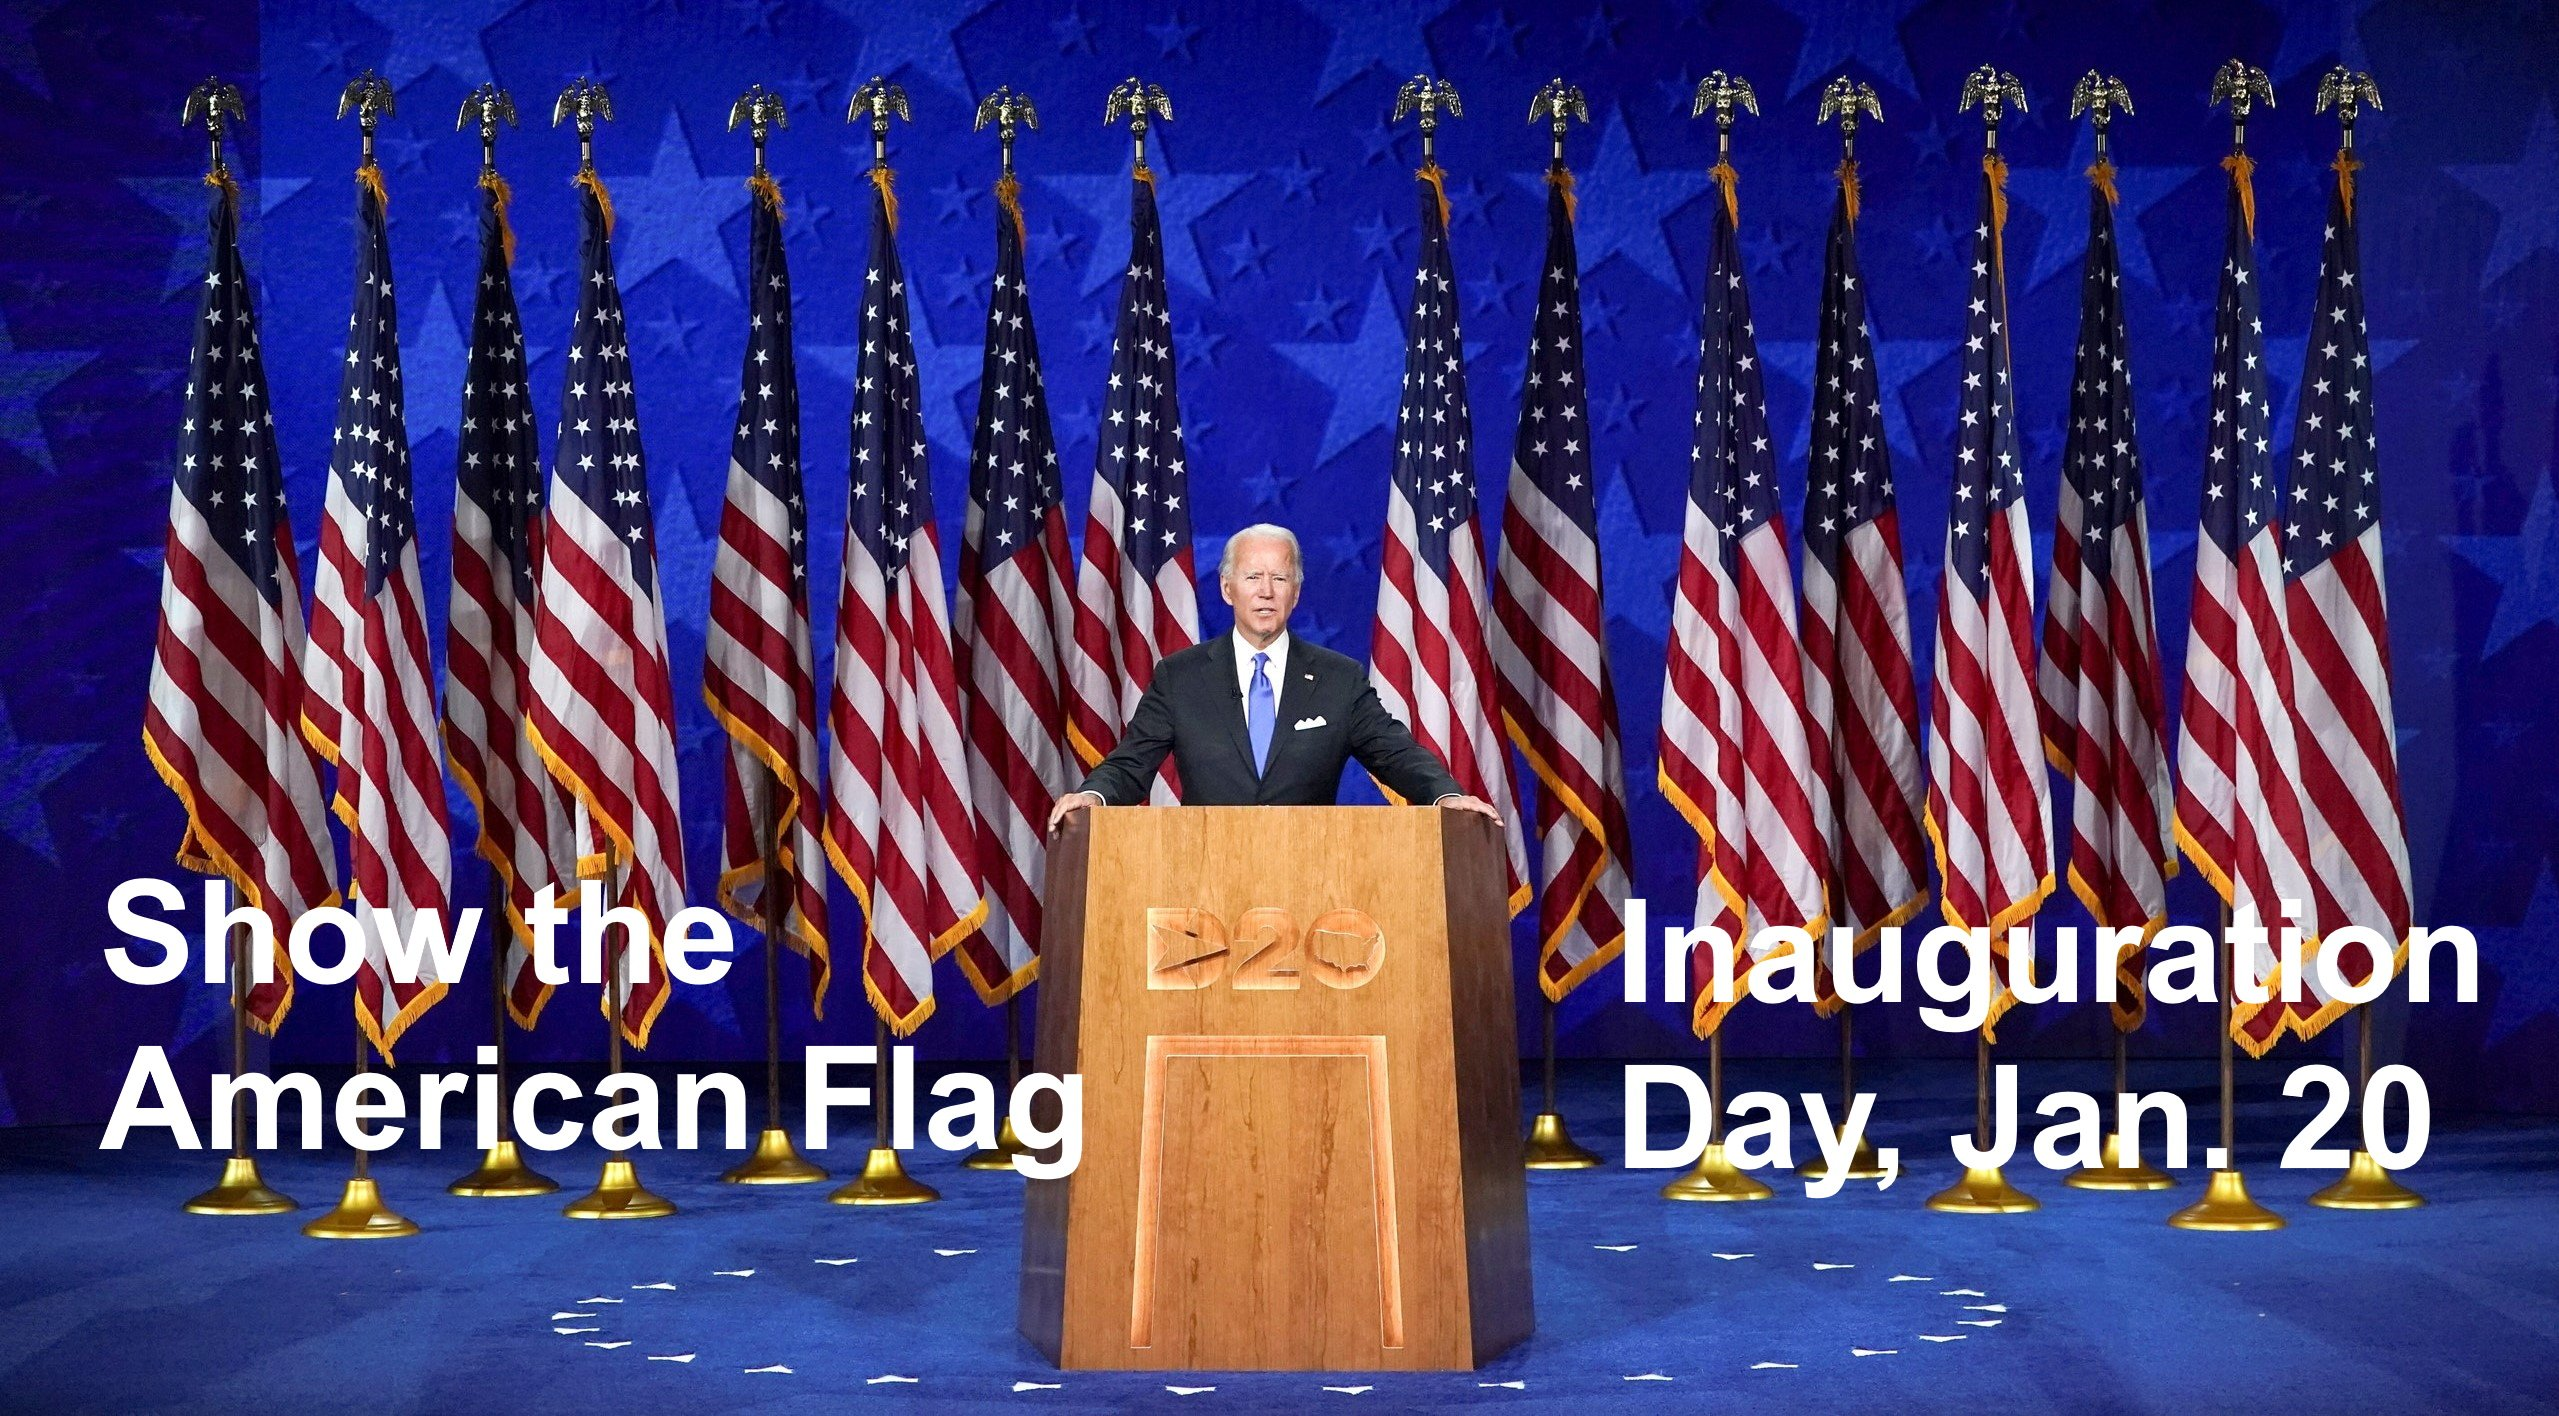 Democrats, Hoist Your Flag on Inauguration Day